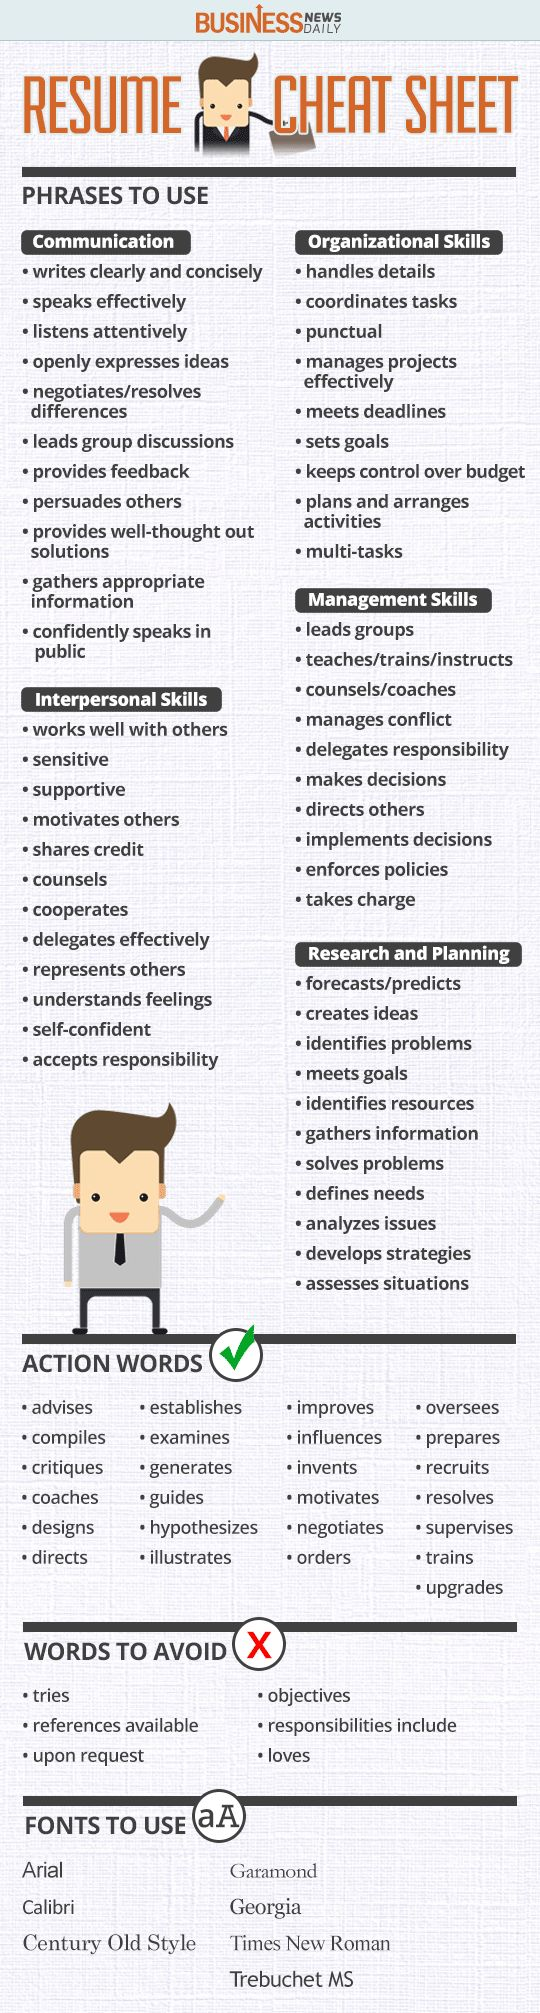 Opposenewapstandardsus  Pleasant  Ideas About Resume On Pinterest  Cv Format Resume Cv And  With Interesting Resume Cheat Sheet Infographic Andrews Almost Done With A Complete Unit On Employment Which With Endearing Student Resume Builder Also Best Resume Software In Addition Do You Put References On A Resume And Resume Cover Page Template As Well As Summary Examples For Resume Additionally Sample Business Analyst Resume From Pinterestcom With Opposenewapstandardsus  Interesting  Ideas About Resume On Pinterest  Cv Format Resume Cv And  With Endearing Resume Cheat Sheet Infographic Andrews Almost Done With A Complete Unit On Employment Which And Pleasant Student Resume Builder Also Best Resume Software In Addition Do You Put References On A Resume From Pinterestcom